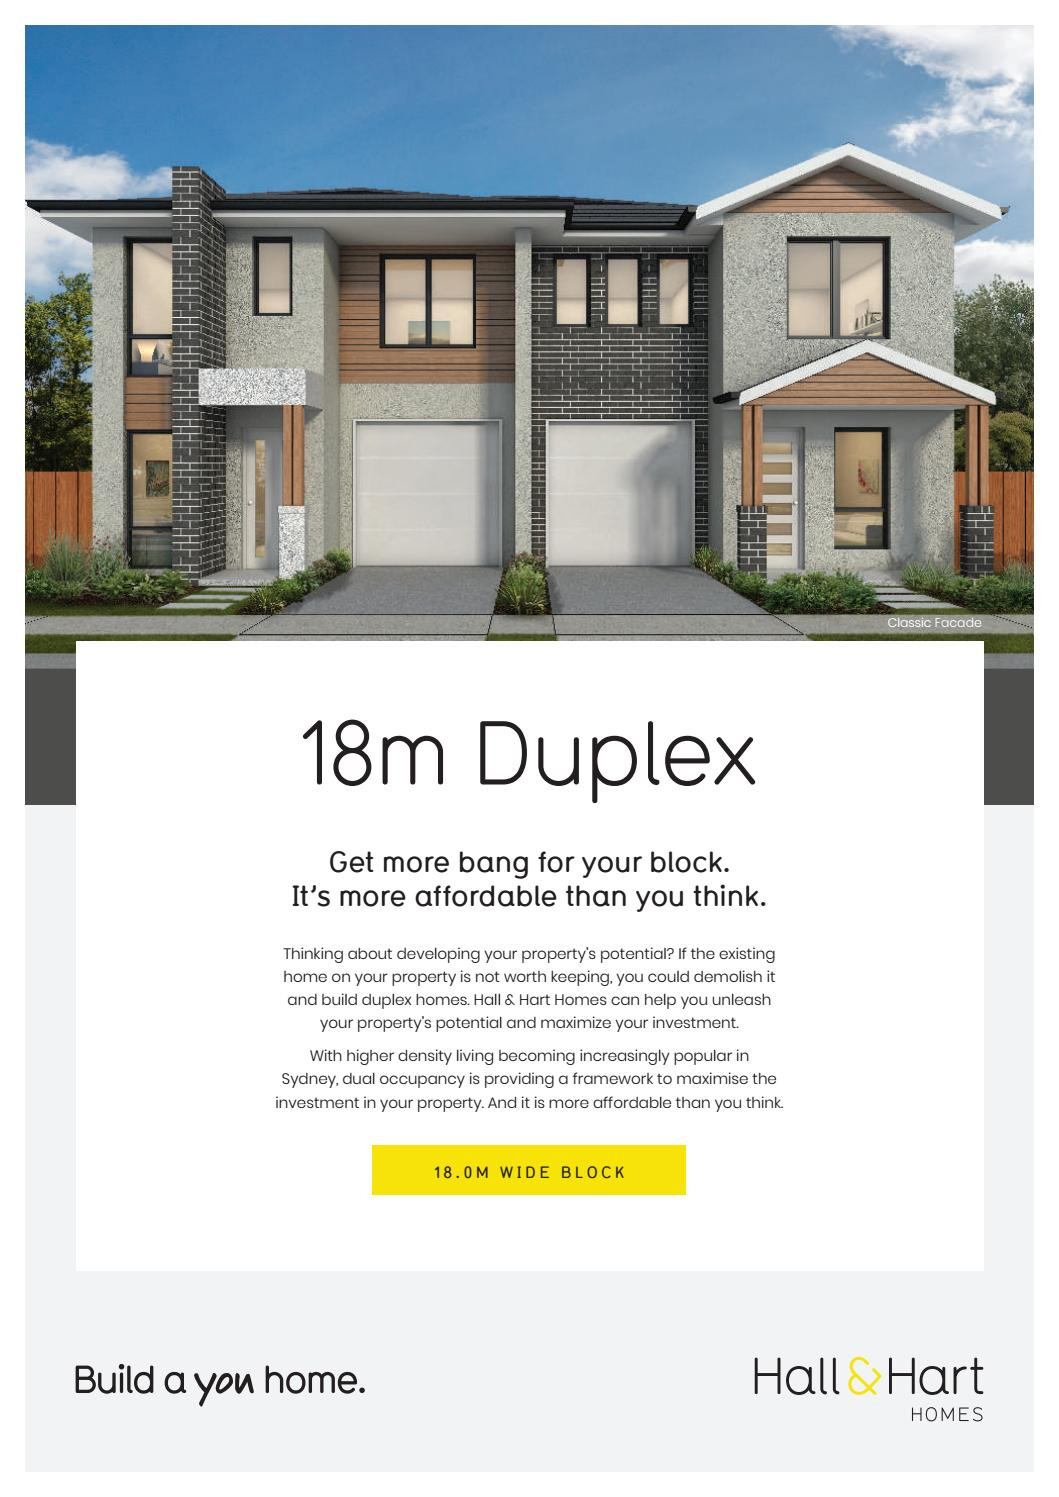 Cost to Build A Duplex House Lovely Hall & Hart Homes 18m Duplex Brochure by Hallharthomes issuu